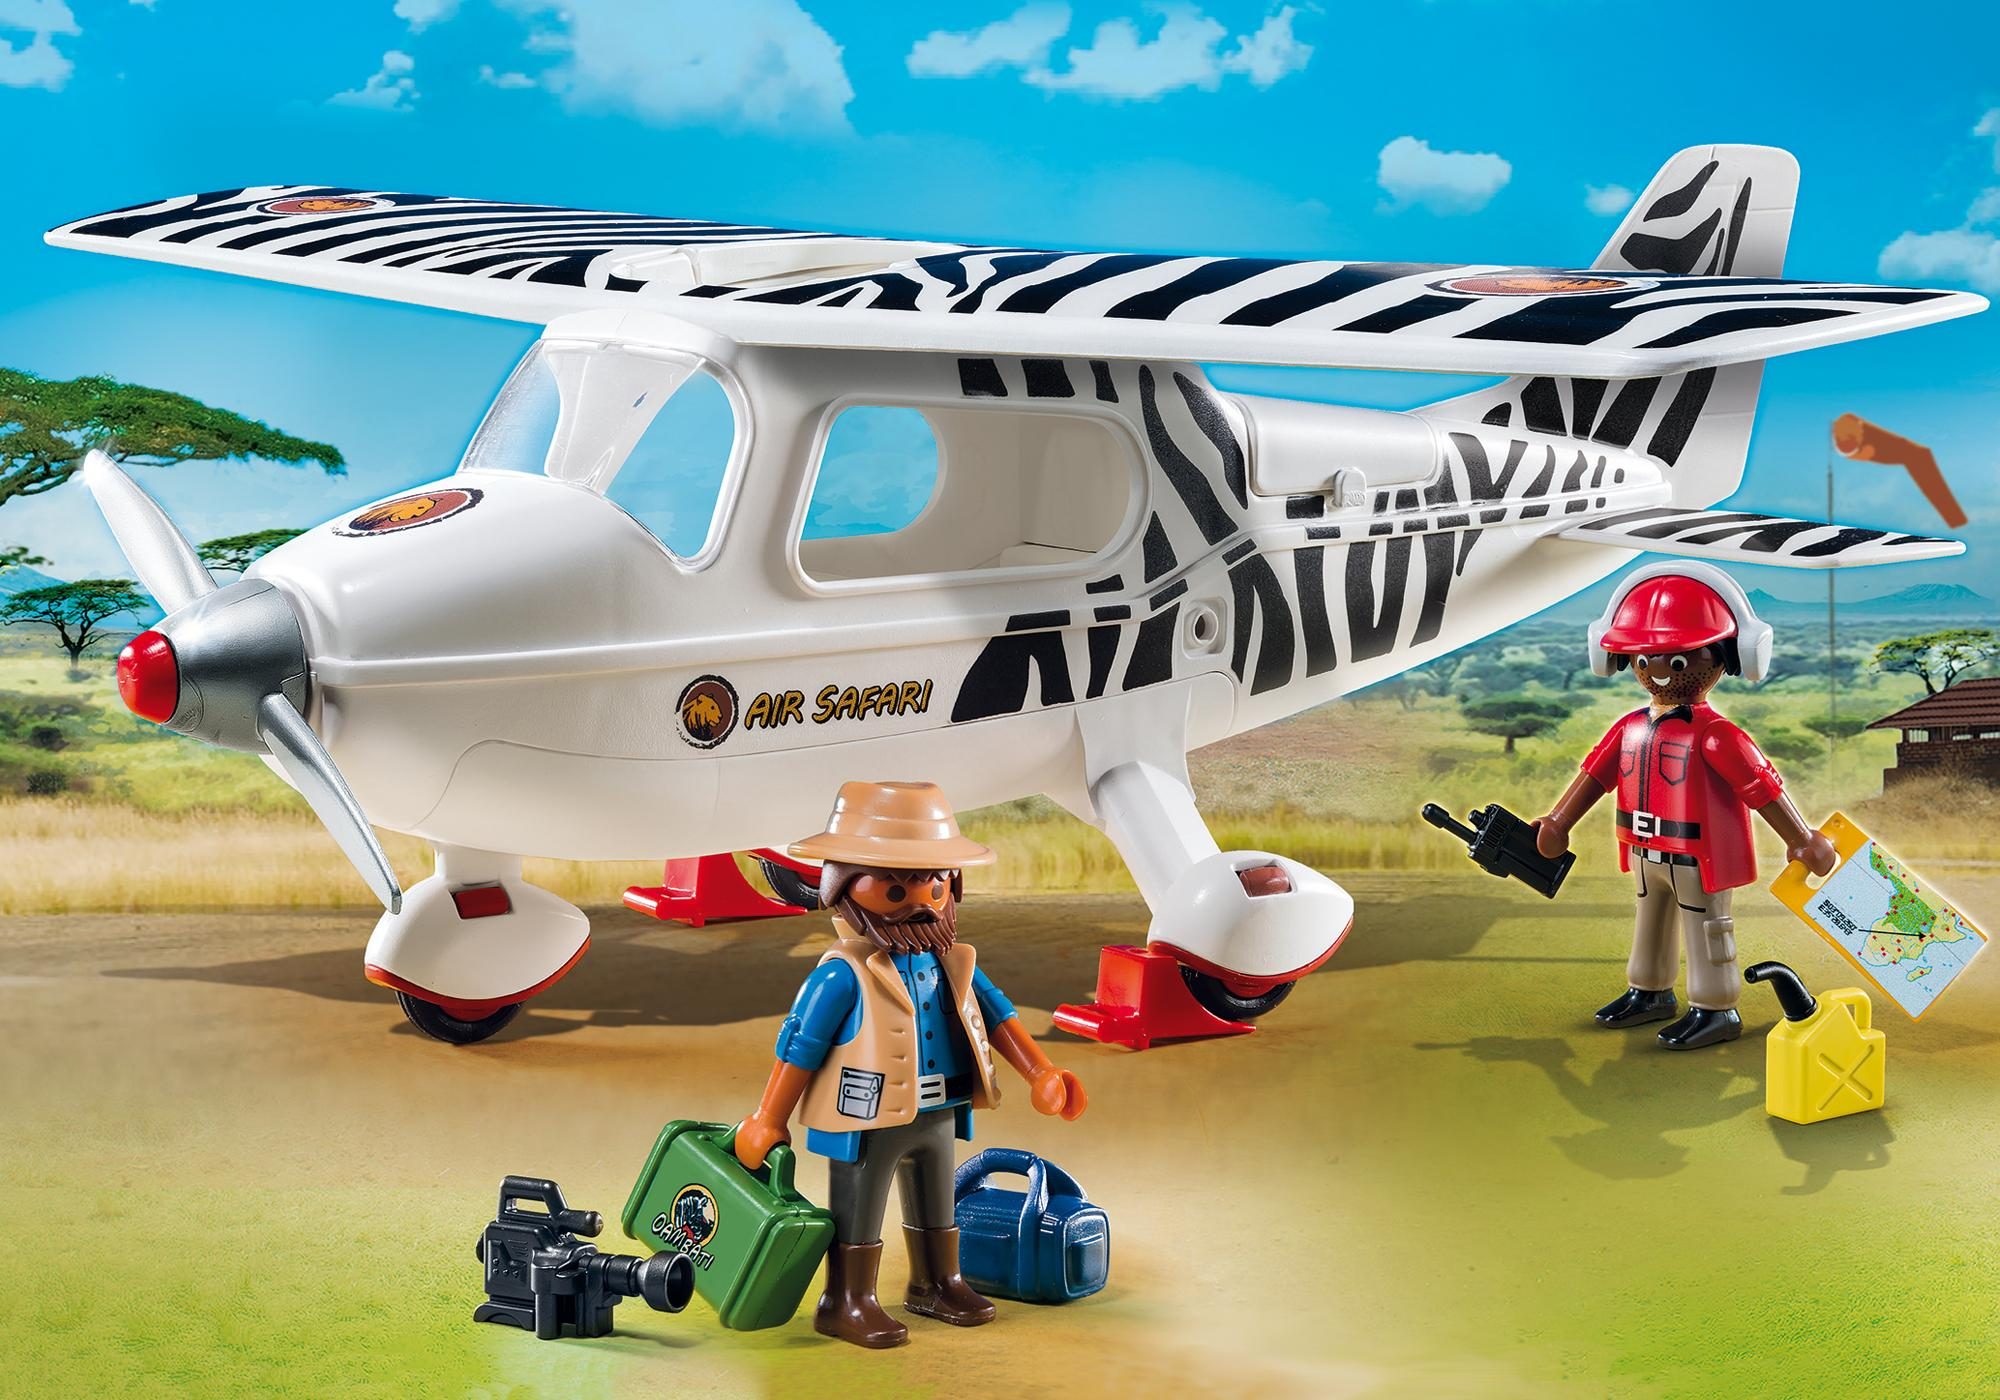 http://media.playmobil.com/i/playmobil/6938_product_detail/Safari-Flugzeug